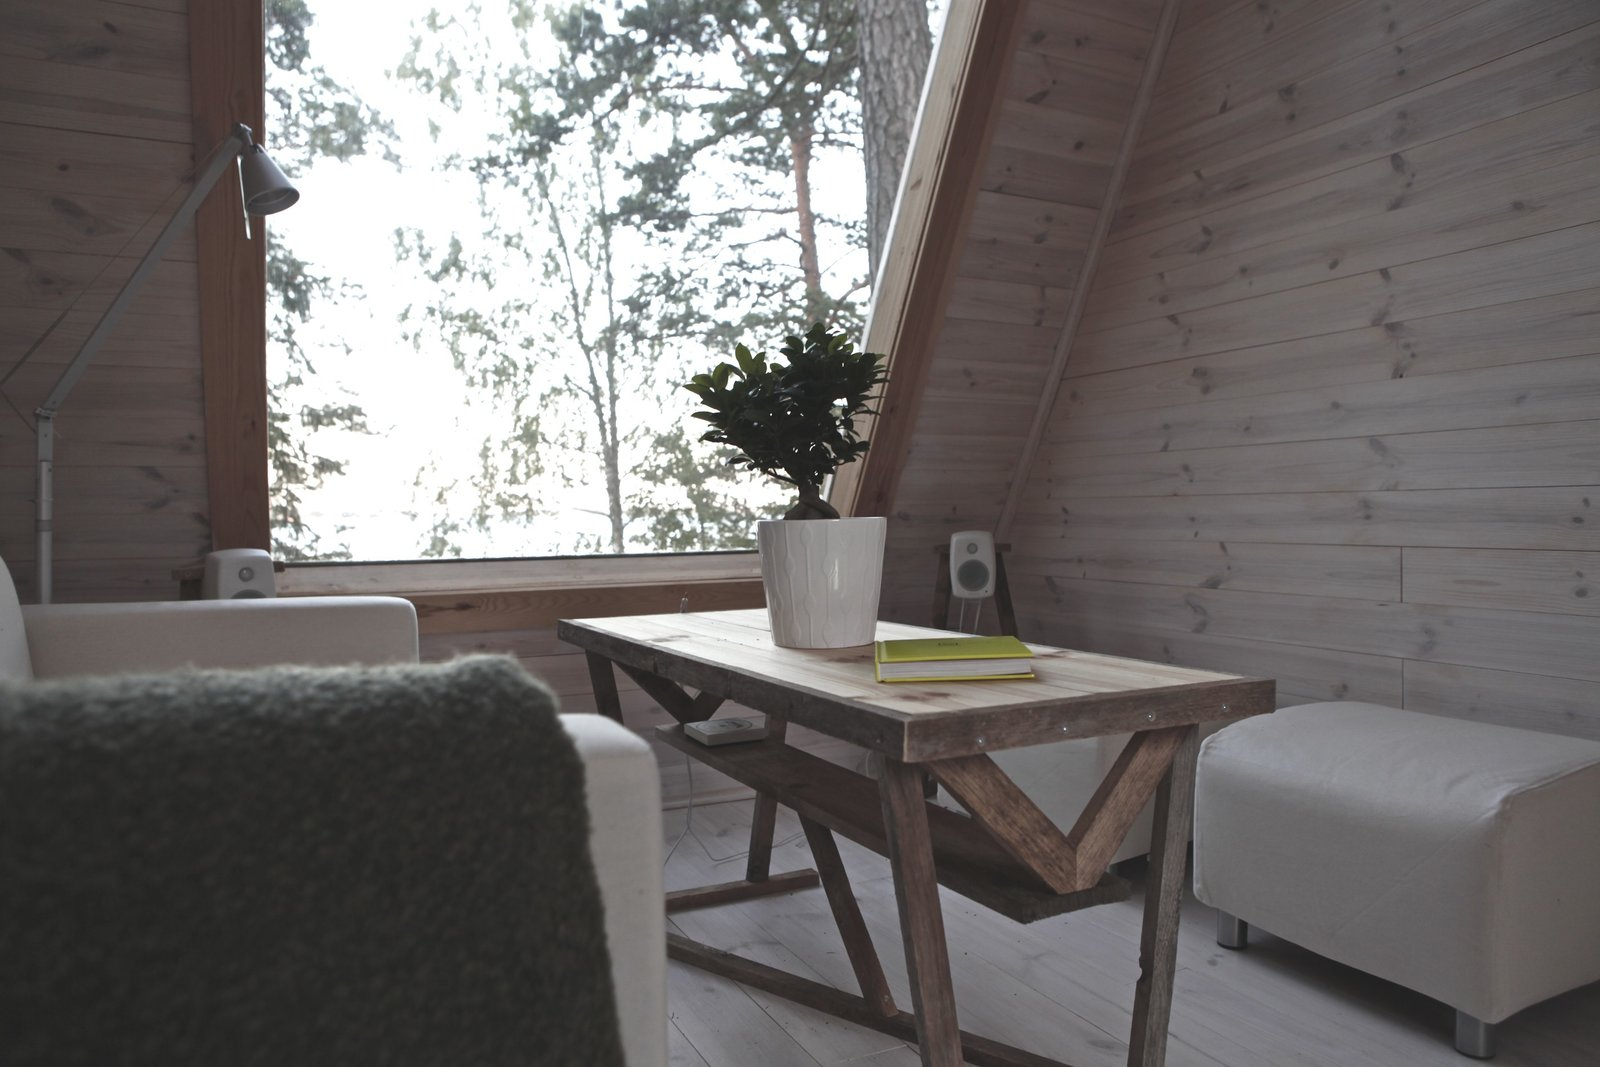 Nido Tiny Cabin by Robert Falck living room with cream colored sofa and ottomans, rustic wood coffee table and light wood walls and floors.